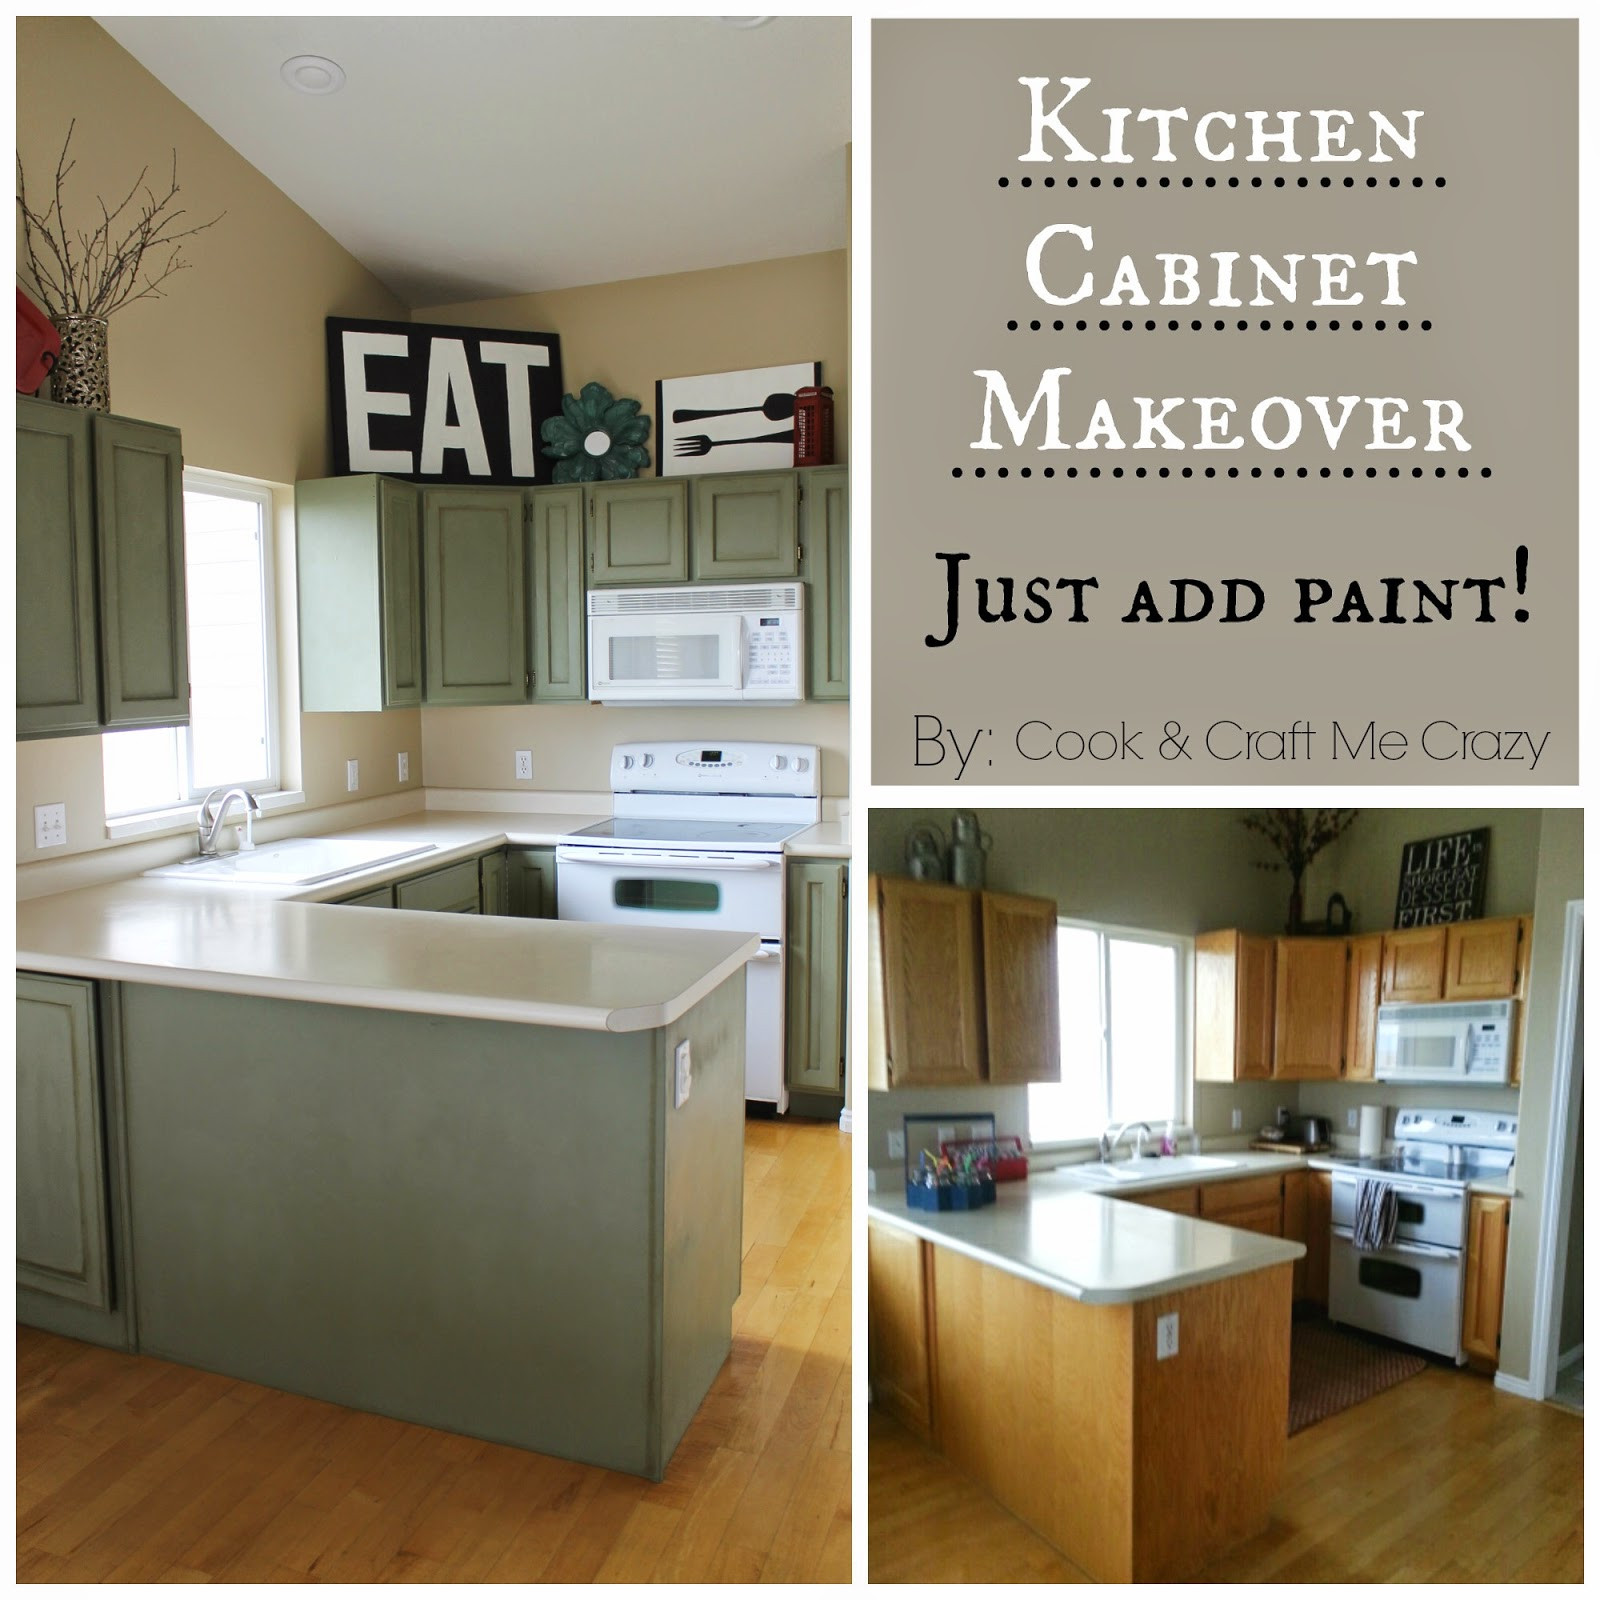 kitchen cabinet makeover cook and craft me crazy  kitchen cabinet makeover  rh   cookandcraftmecrazy blogspot com